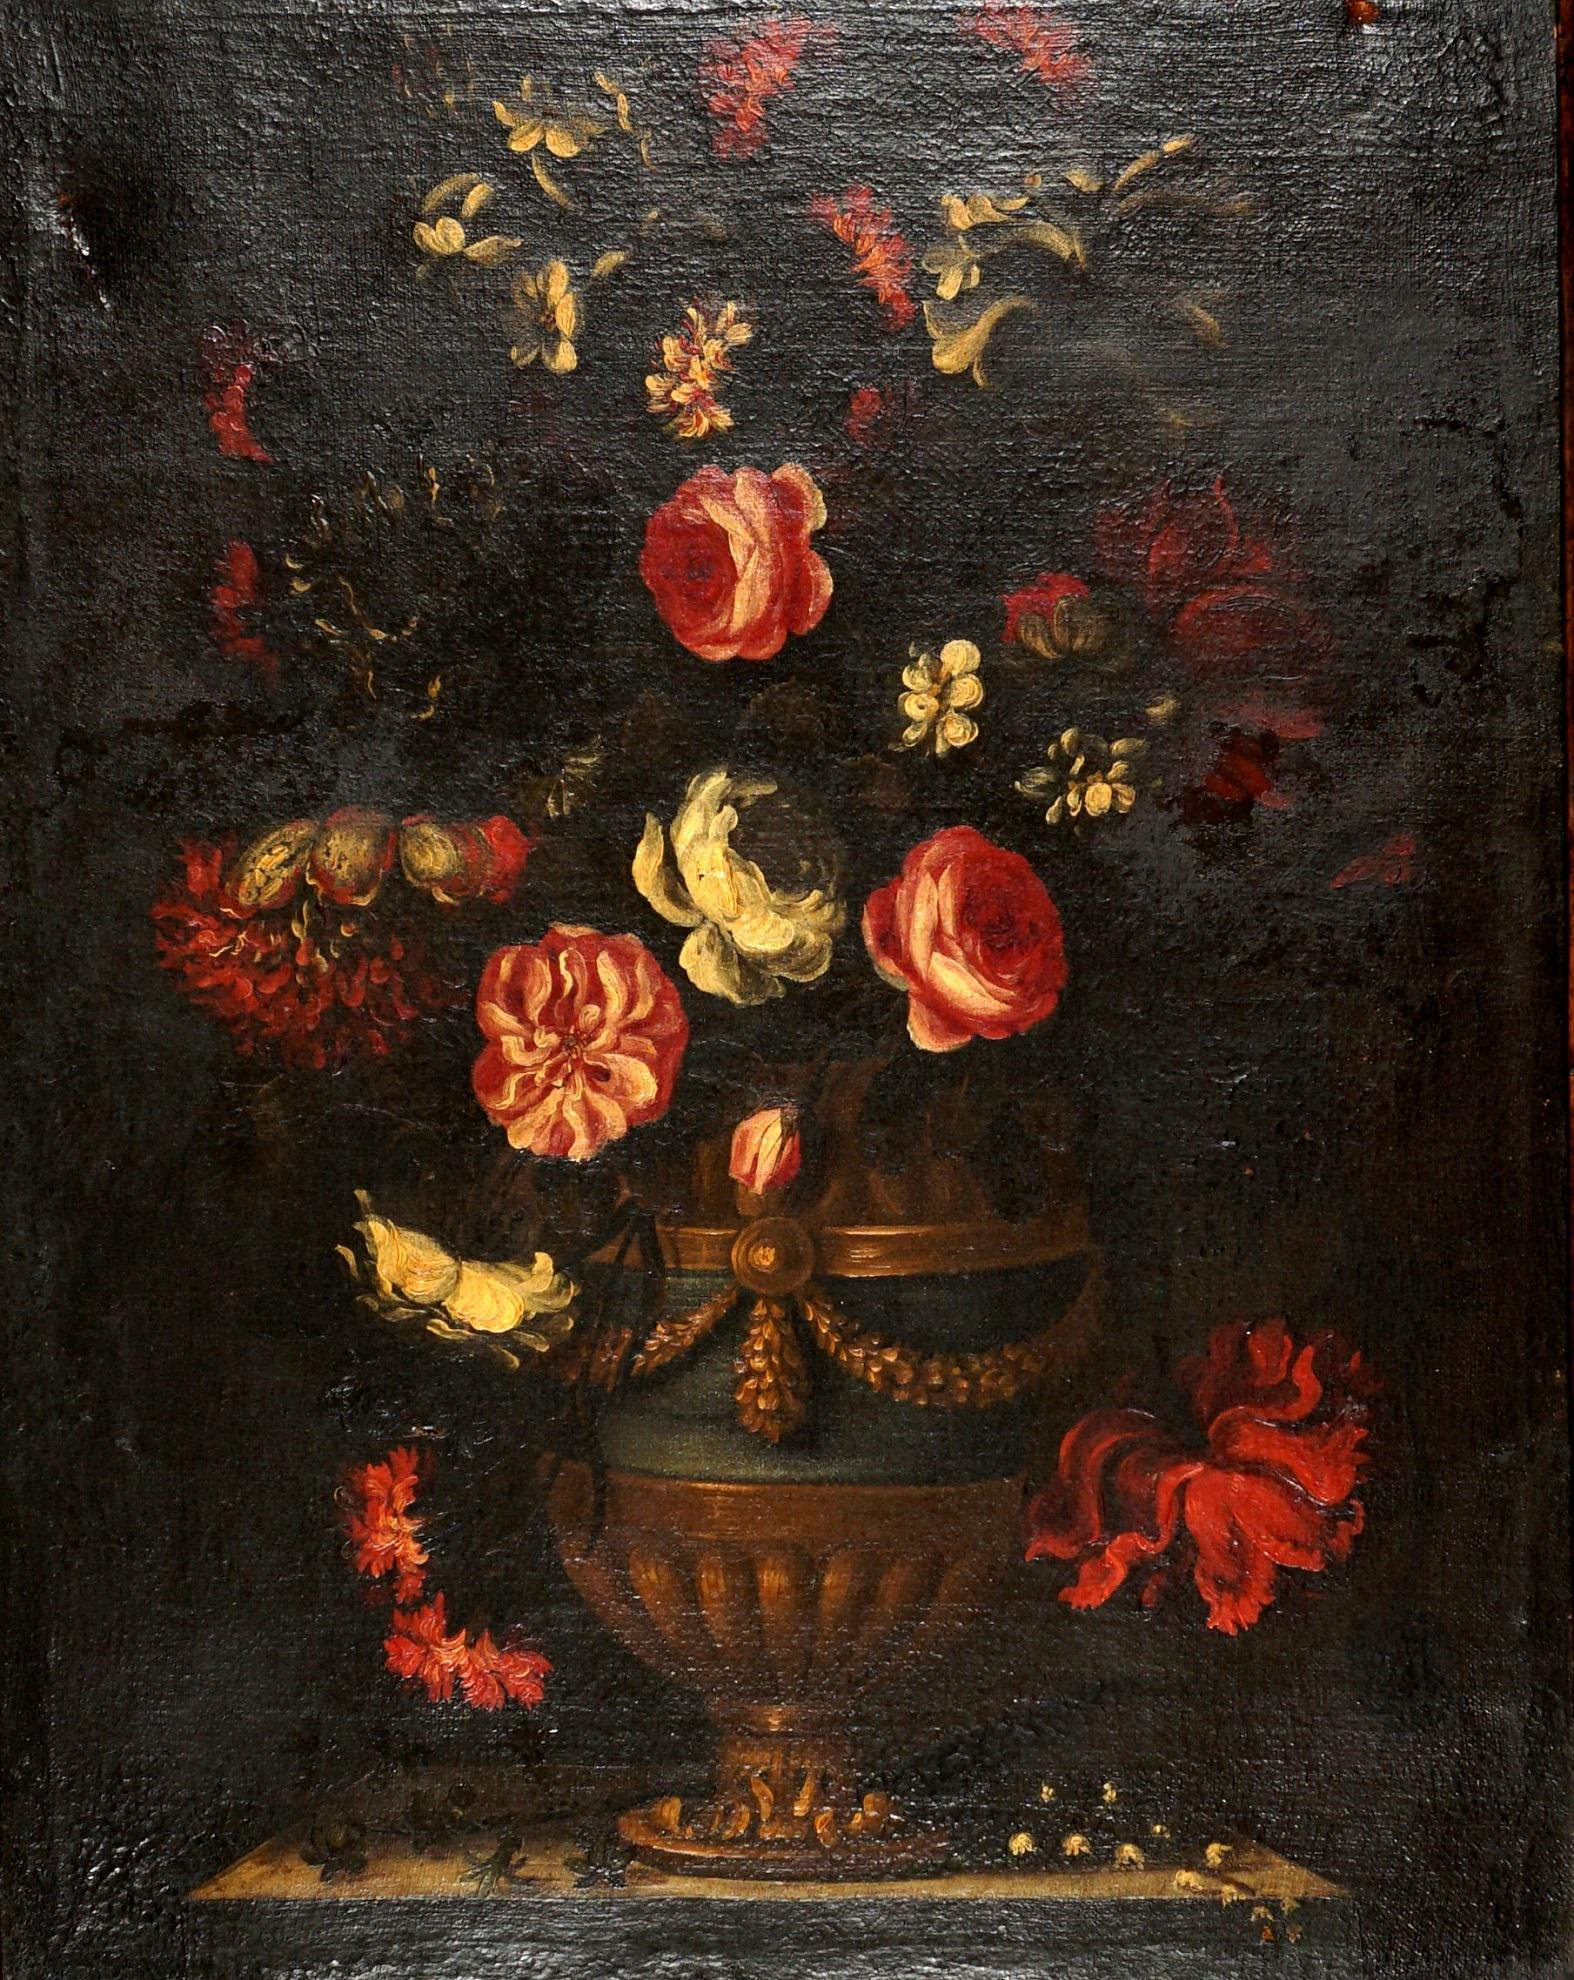 19th Century Old Master Style Still Life Painting